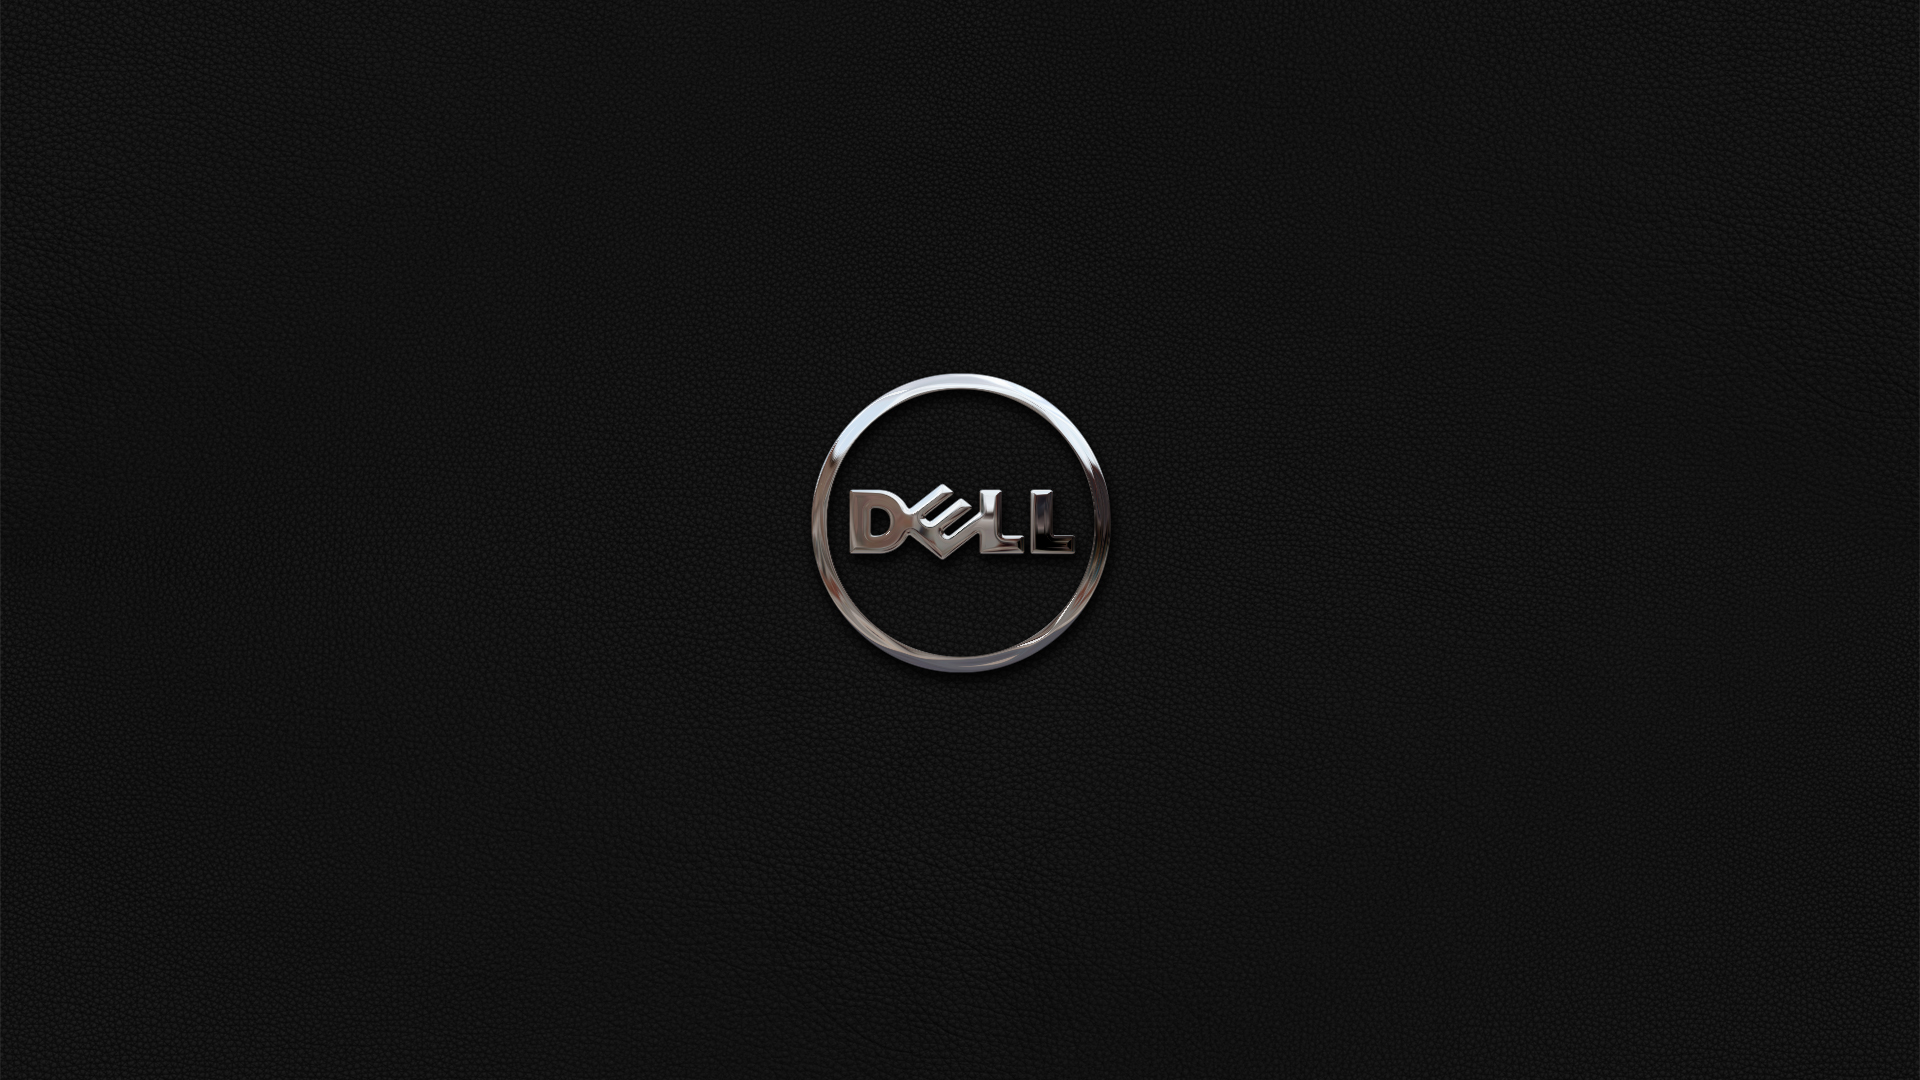 Dell Logo Black Hd | www.pixshark.com - Images Galleries ...